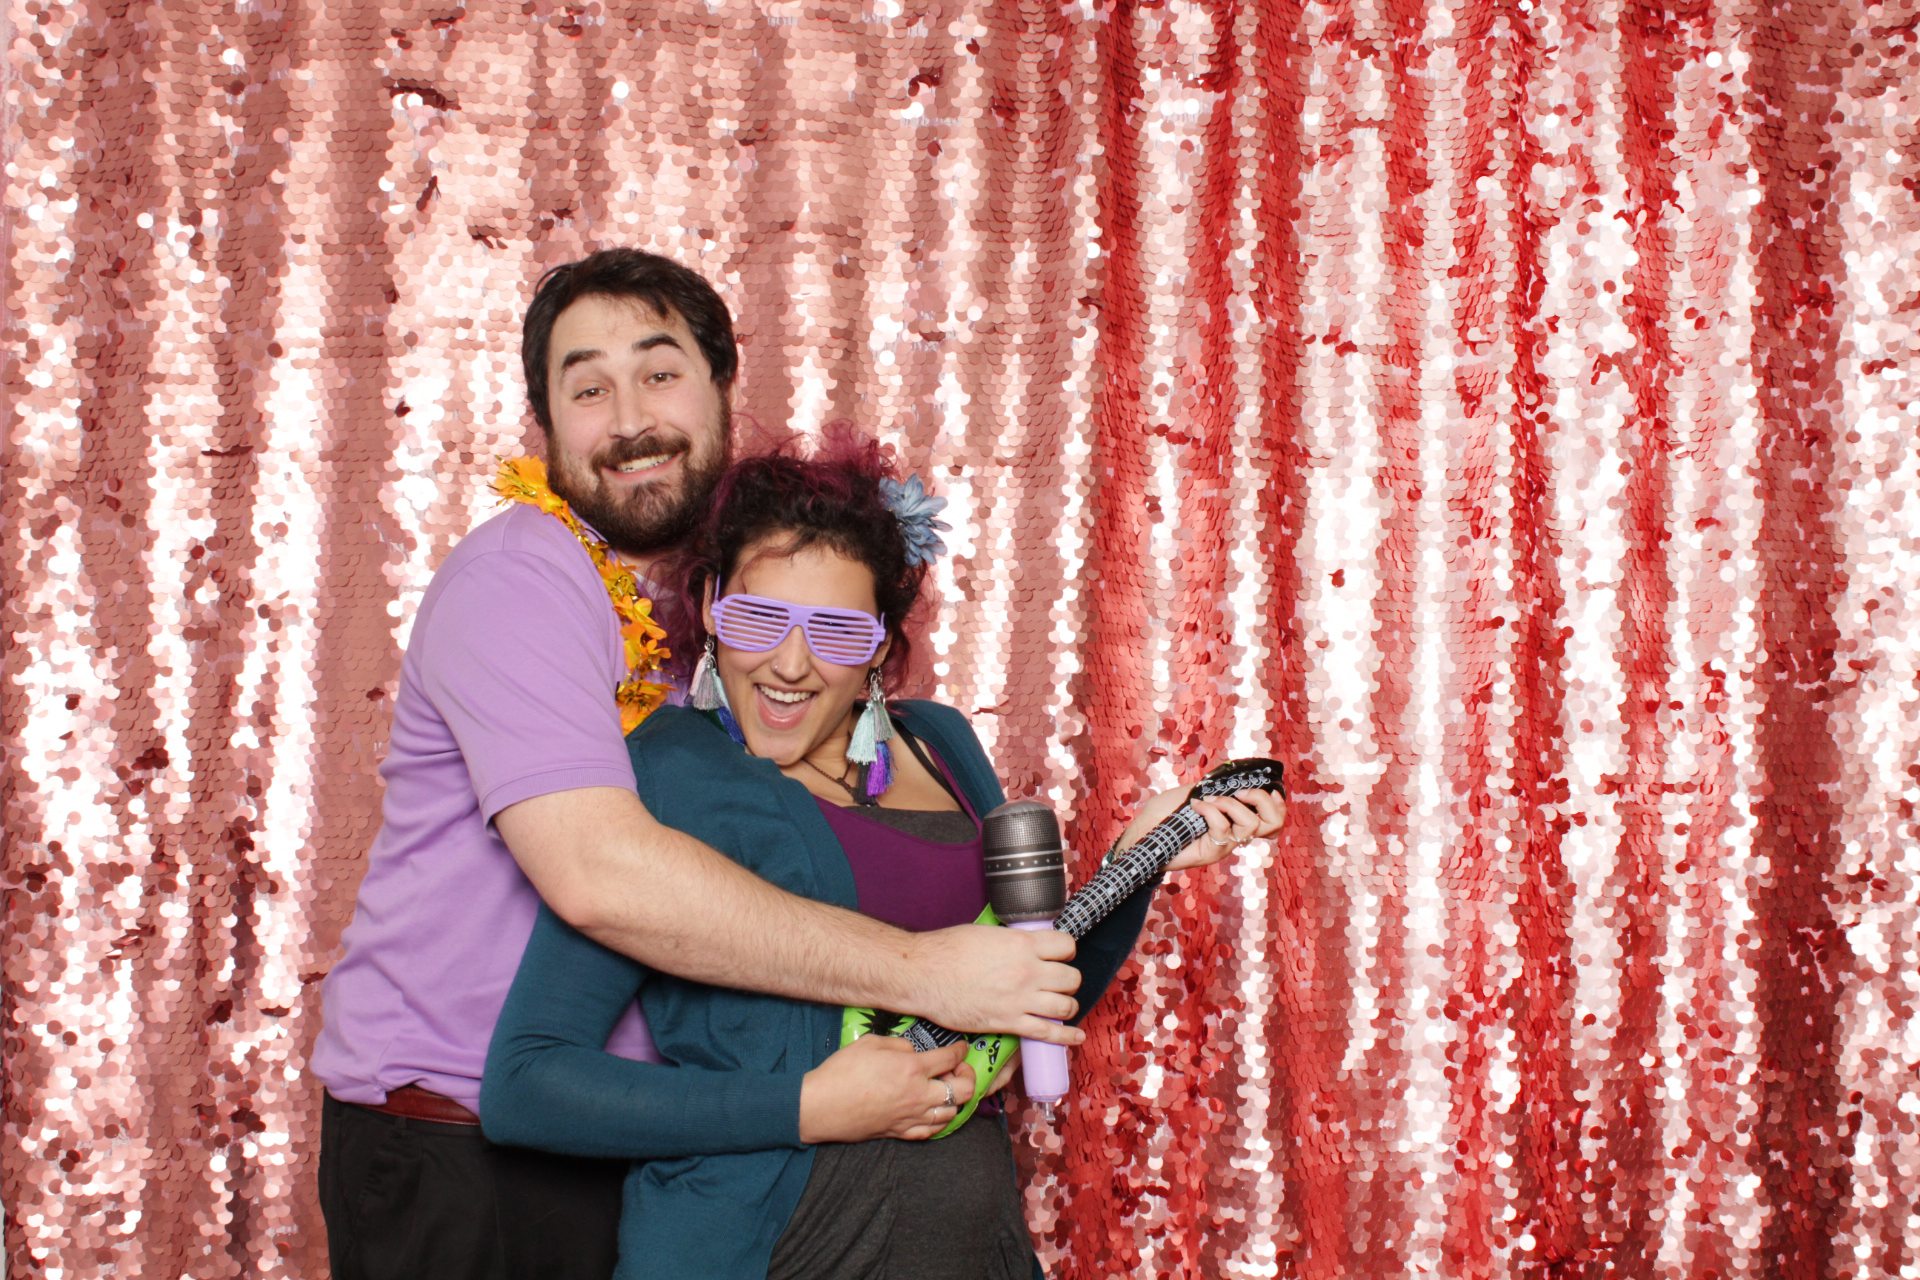 10 Best Photo Booth Rentals in Philadelphia